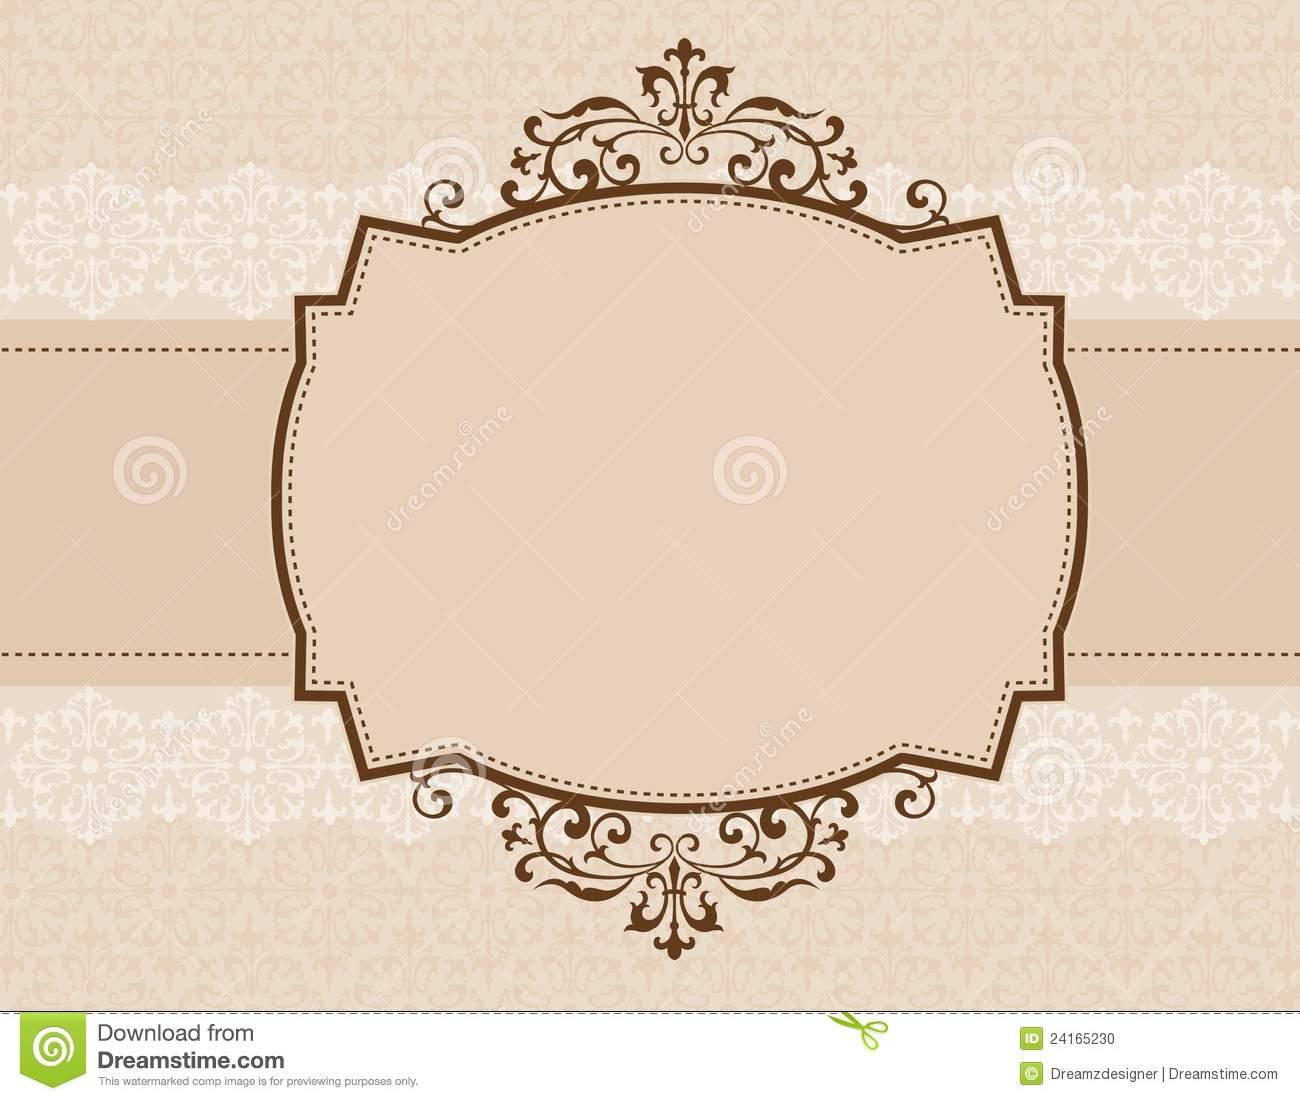 Engagement Card Background 8 » Background Check All